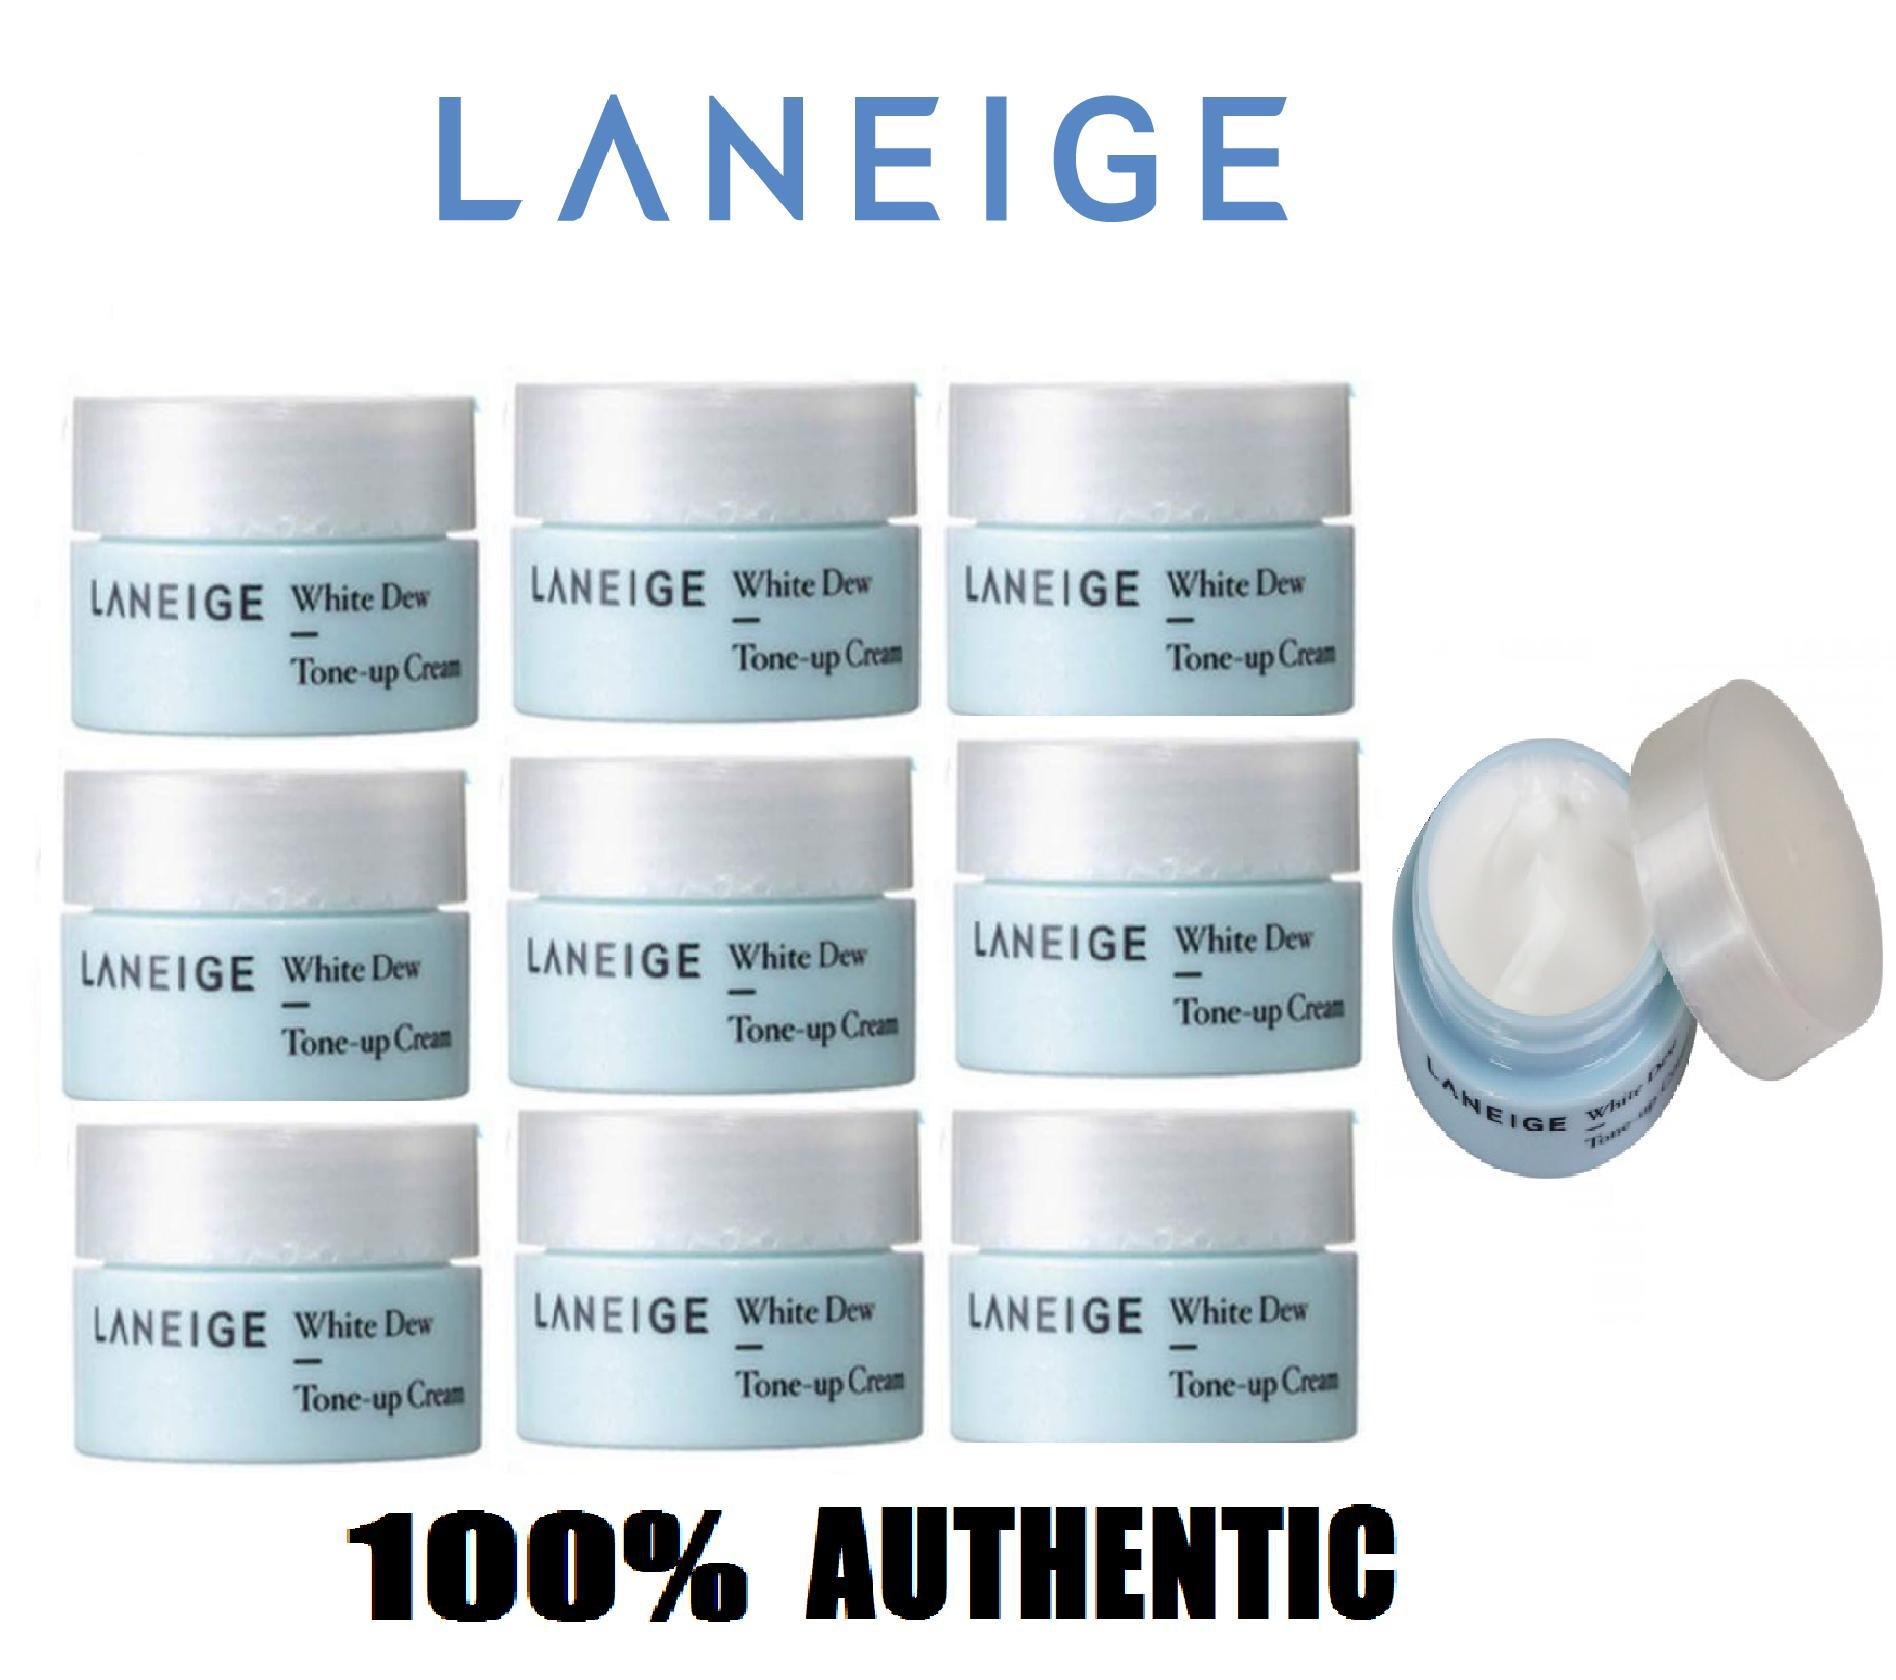 Moisturizers And Cream Buy At Best Price In Wardah Purifying Toner Laneige White Dew Tone Up 10ml X 10pcs